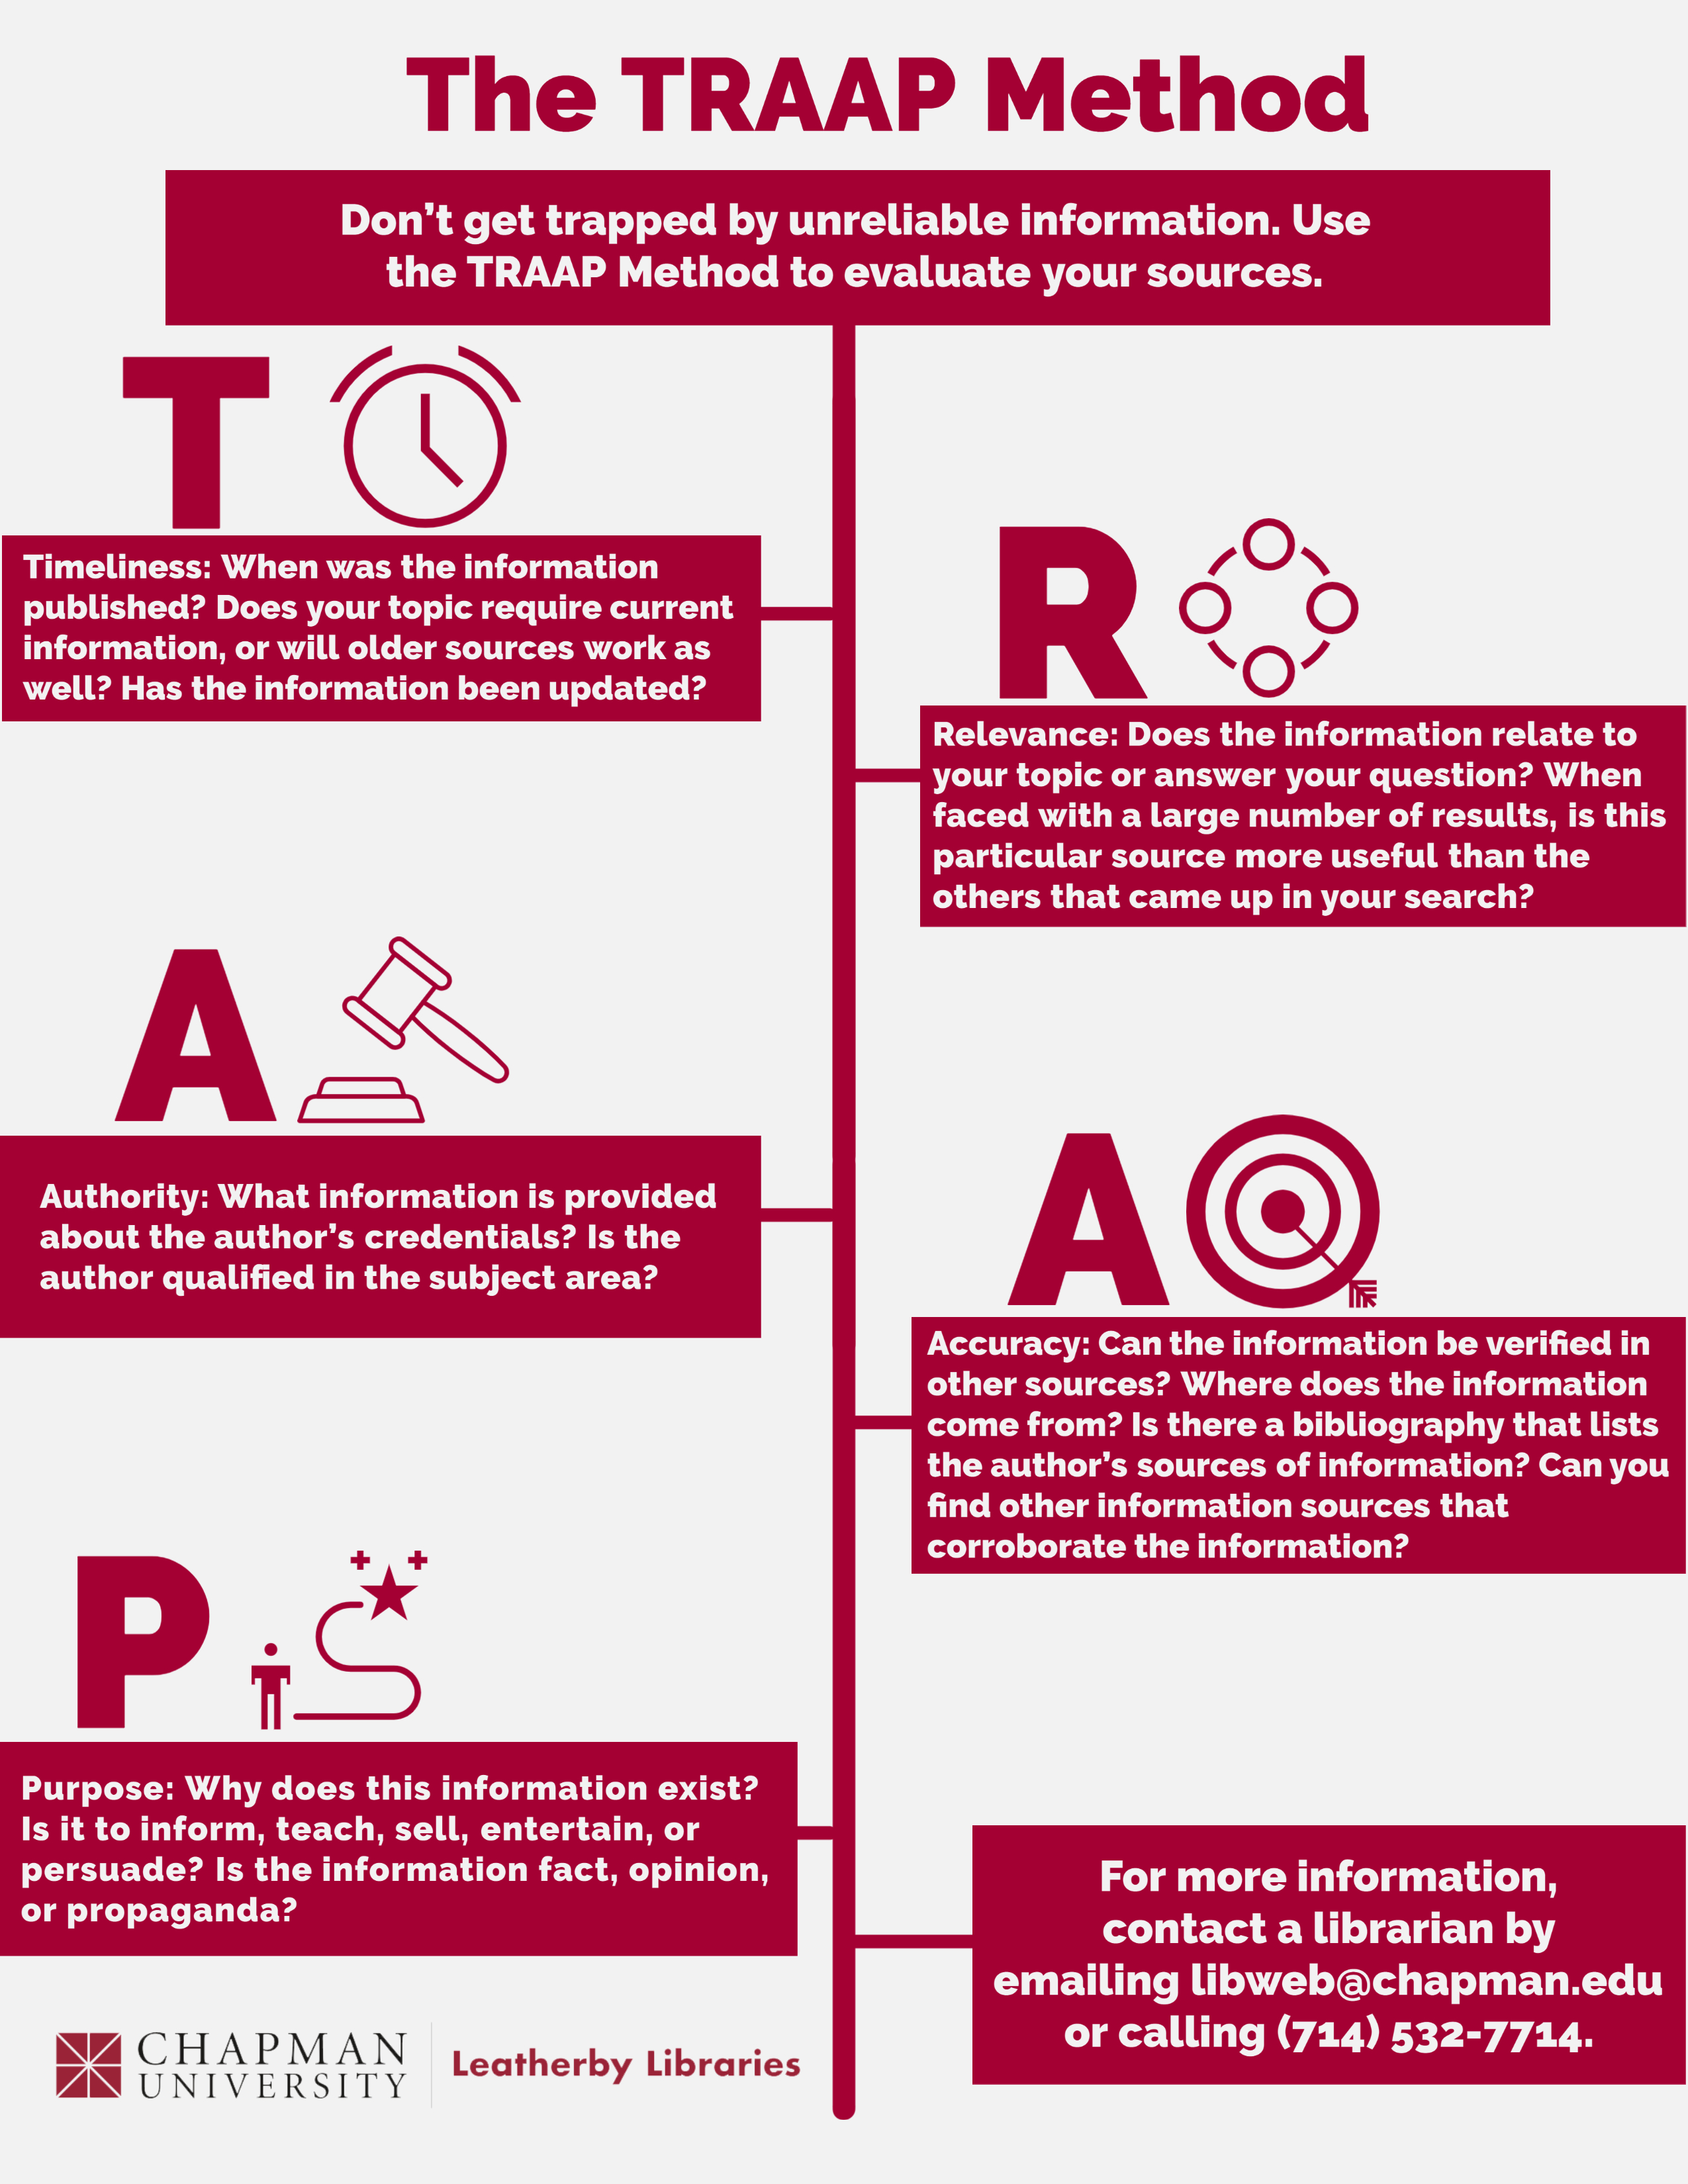 """Infographic with a white background and red text and images. At the top it reads """"The TRAAP Method."""" The next line reads """"Don't get trapped by unreliable information. Use the TRAAP Method to evaluate your sources.."""" At the top left is a large letter T next to an icon of a clock. The rectangle below these has the explanation included in this blog post about """"Timeliness."""" One step down on the right is a large letter R next to an icon representing relevance. Below these is a rectangle with the text in this blog explaining """"Relevance."""" Another step down on the left is a large letter A next to an icon of a gavel, over a rectangle containing the explanation of """"Authority."""" One more step down on the right is a large letter A next to an icon of a target with an arrow in the bull's-eye, over a rectangle containing the explanation of """"Accuracy."""" One more step down on the right is a large letter P next to an icon of a stick figure with a curving line leading from the person to a star, over a rectangle explaining """"Purpose."""" One more step down on the right is a rectangle with text that reads """"For more information, contact a librarian by emailing libweb@chapman.edu, or calling (714) 532-7714. In the bottom left-hand corner of the graphic is the Leatherby Libraries logo."""